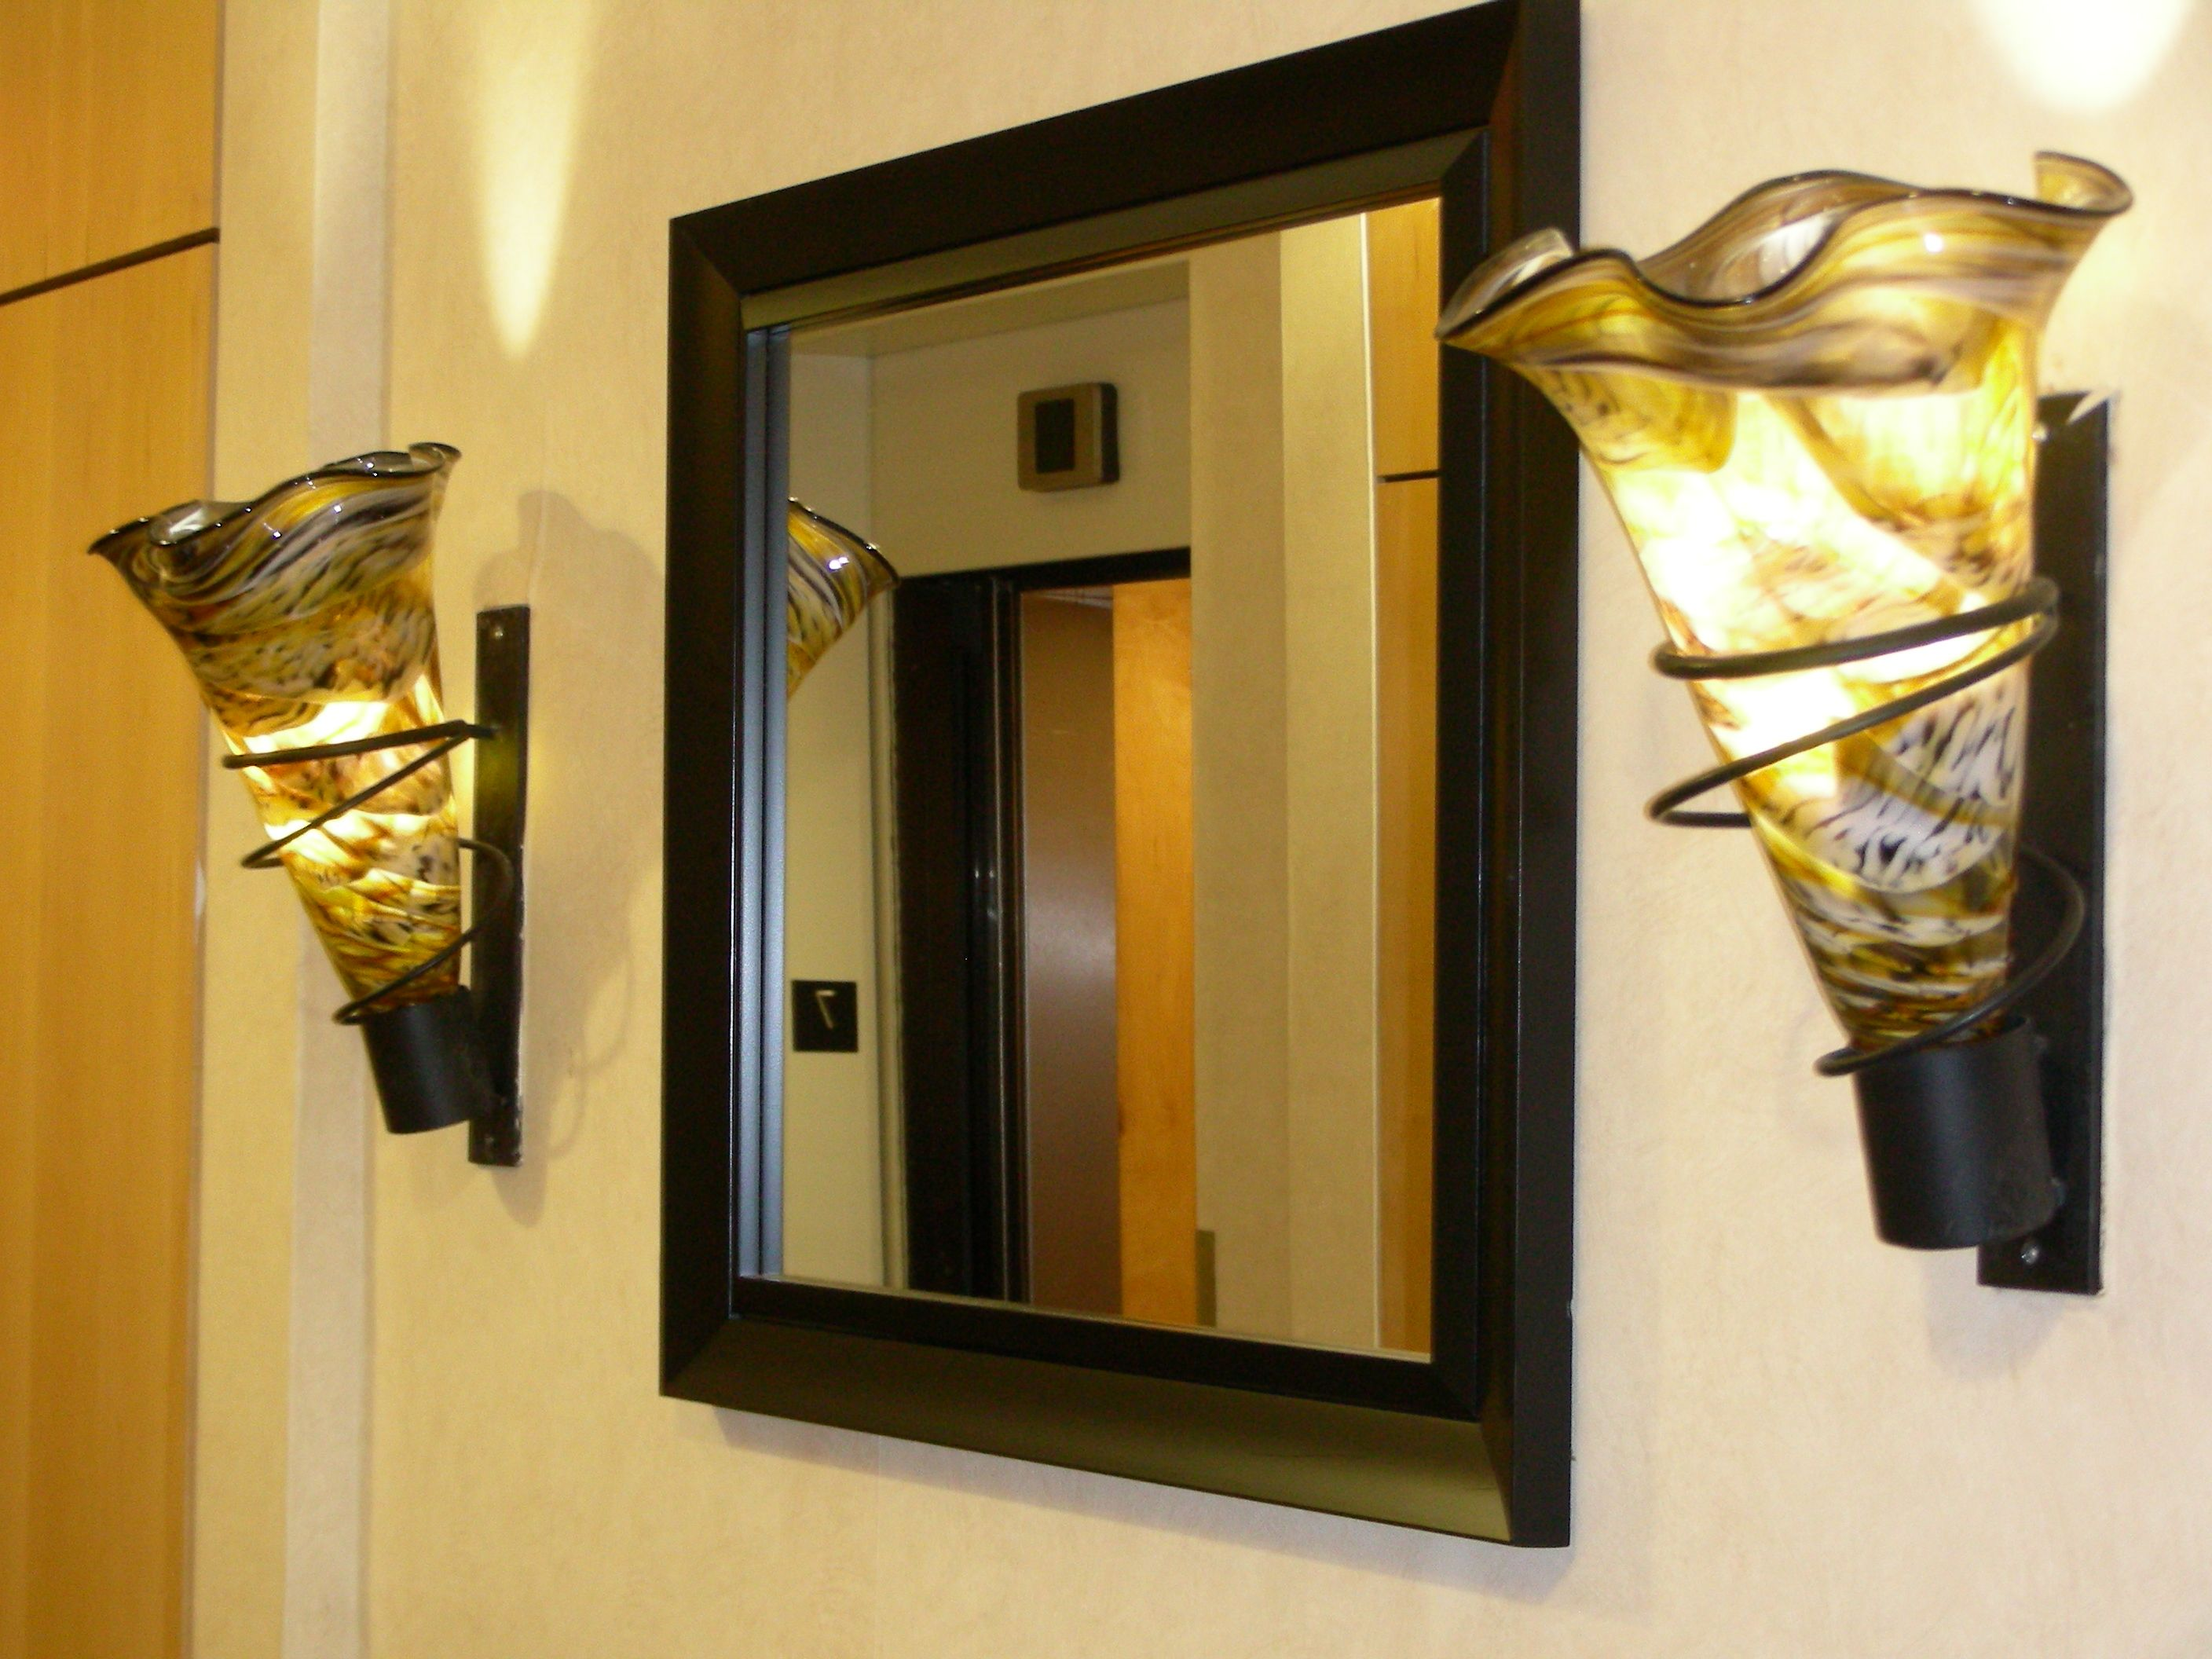 Wall sconce ideas to put next to our mirror things for - Things to put on a wall ...